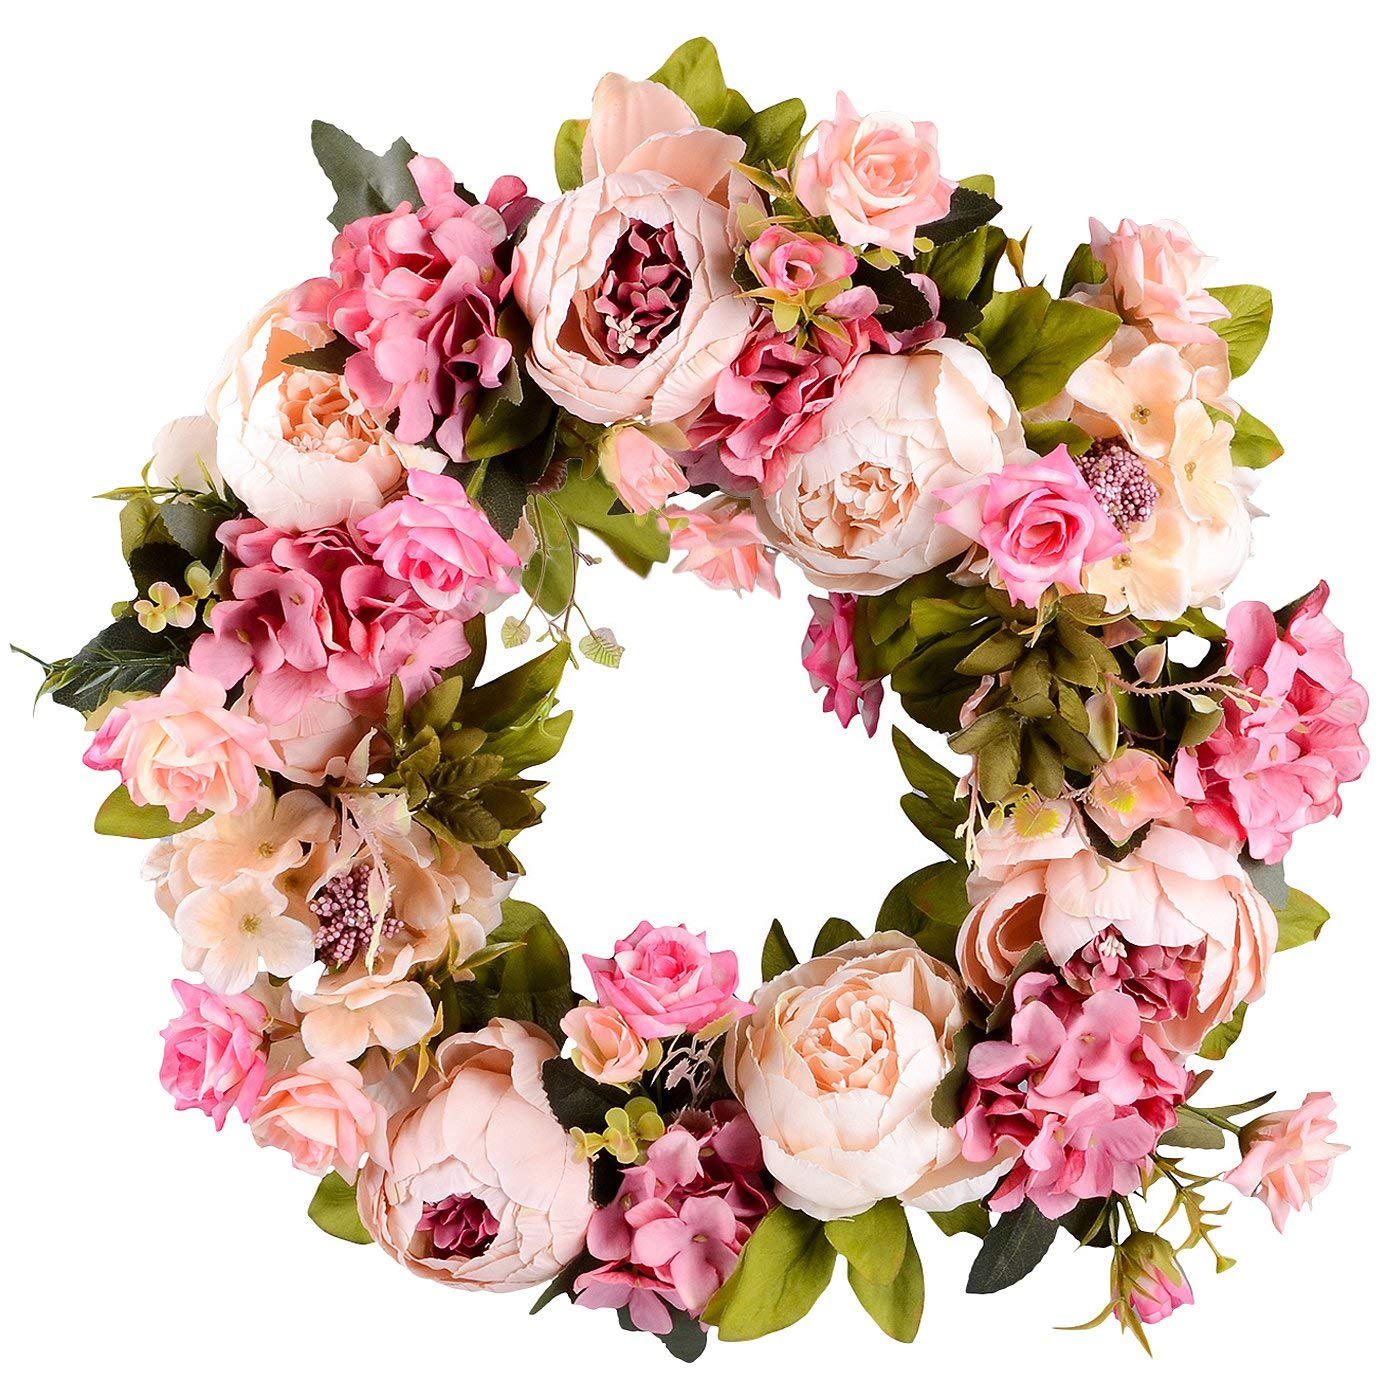 Artificial Flower Wreath Peony Wreath - 16inch Door Wreath Spring Wreath Round Wreath For The Front Door, Wedding, Home DArtificial Flower Wreath Peony Wreath - 16inch Door Wreath Spring Wreath Round Wreath For The Front Door, Wedding, Home D